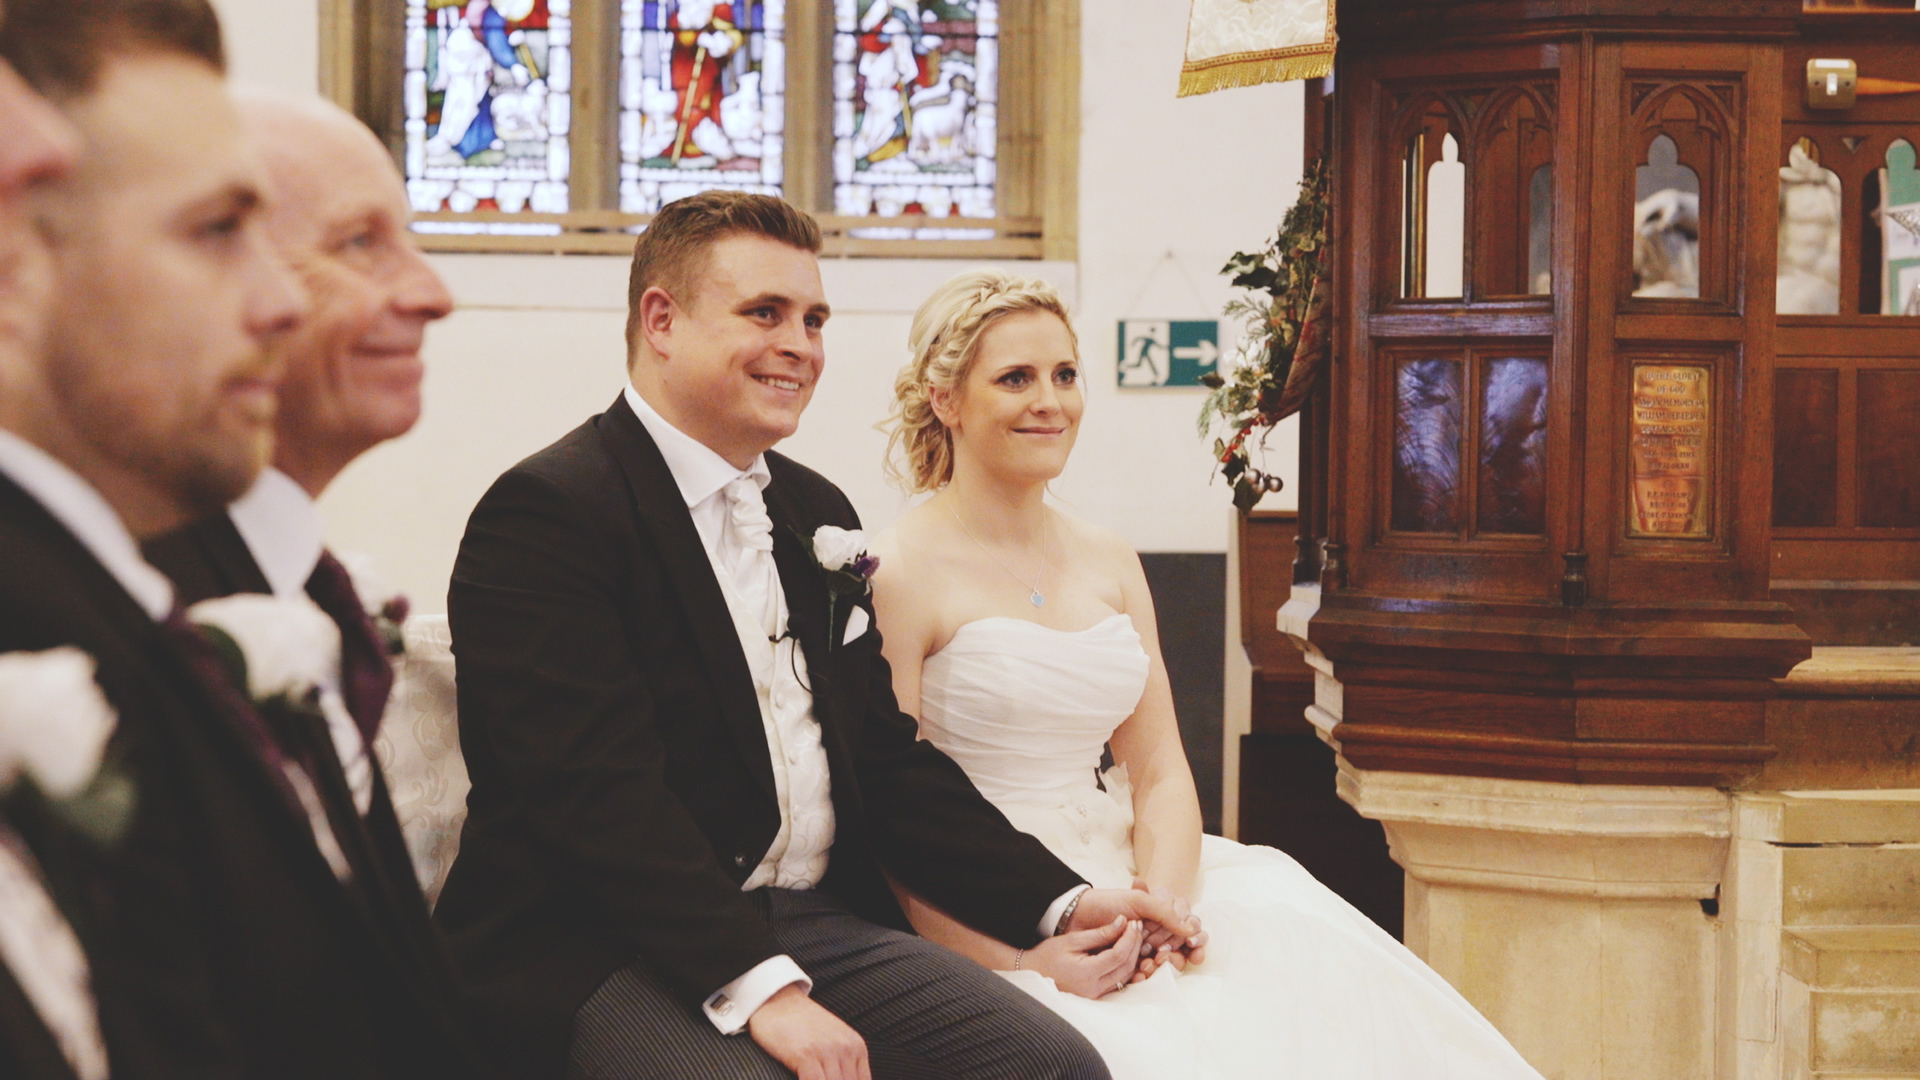 L&C Smile at Vows.jpg